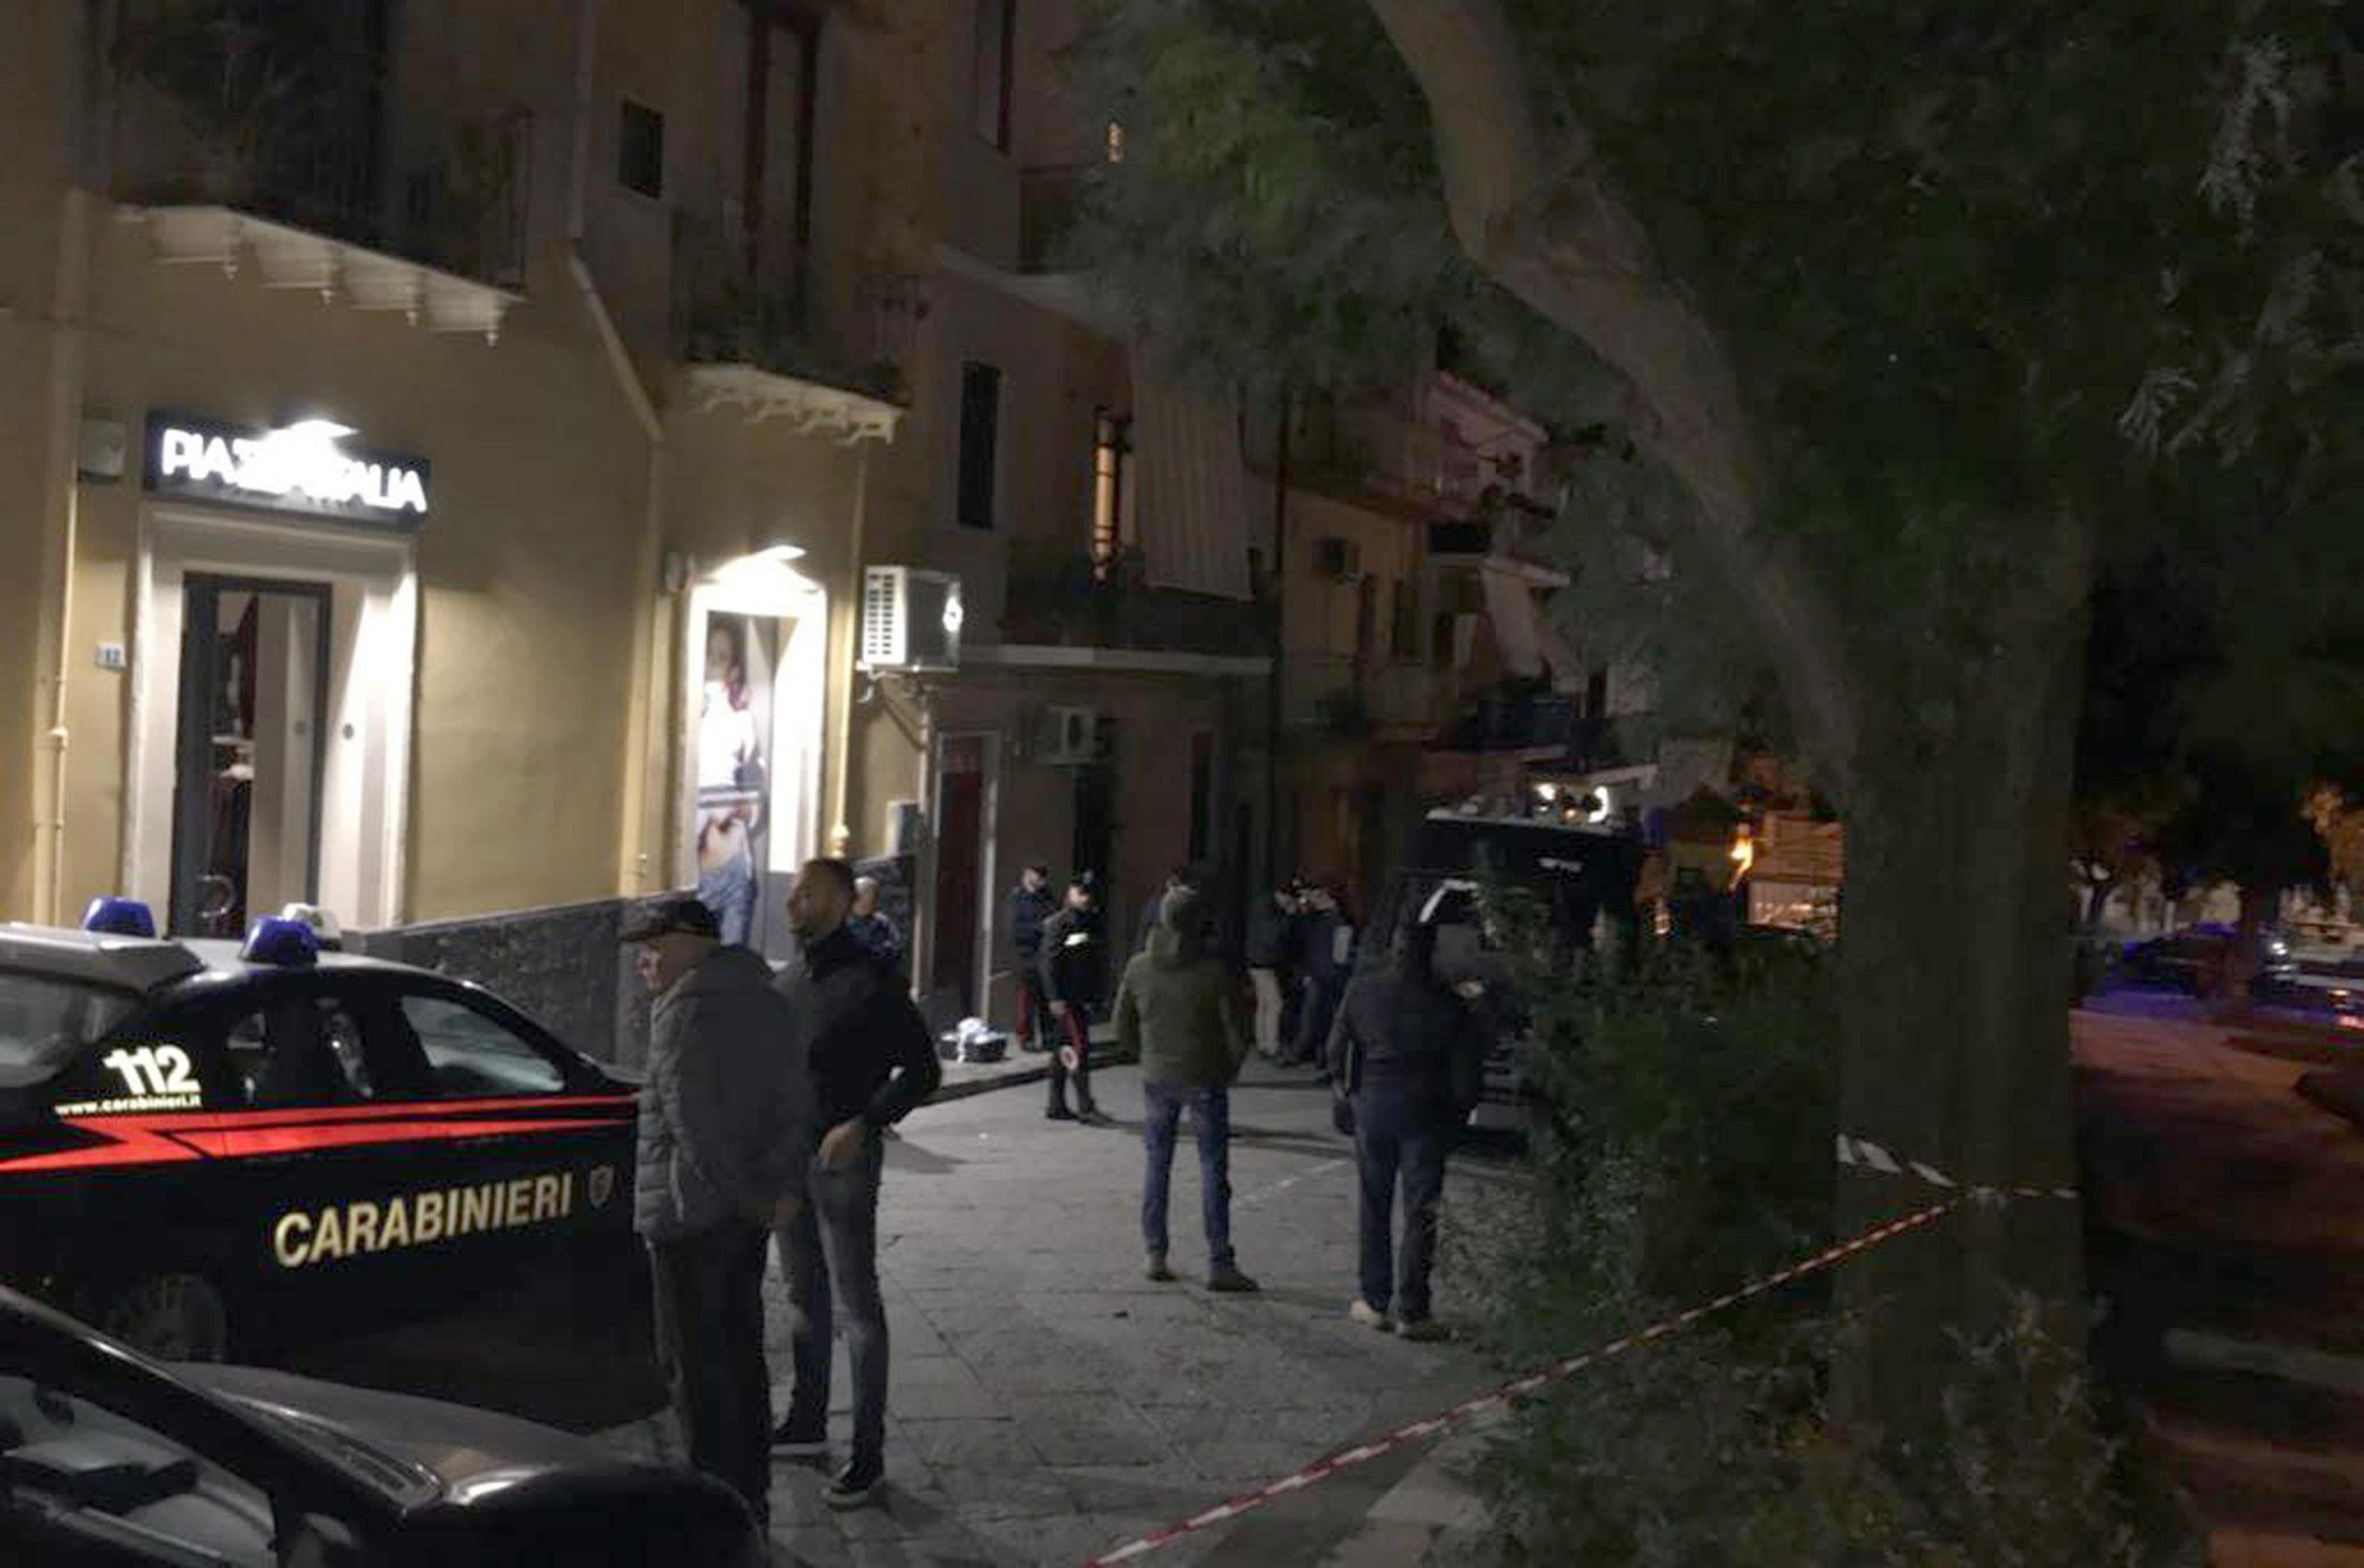 ++ Due donne uccise in casa nel catanese, ipotesi rapina ++